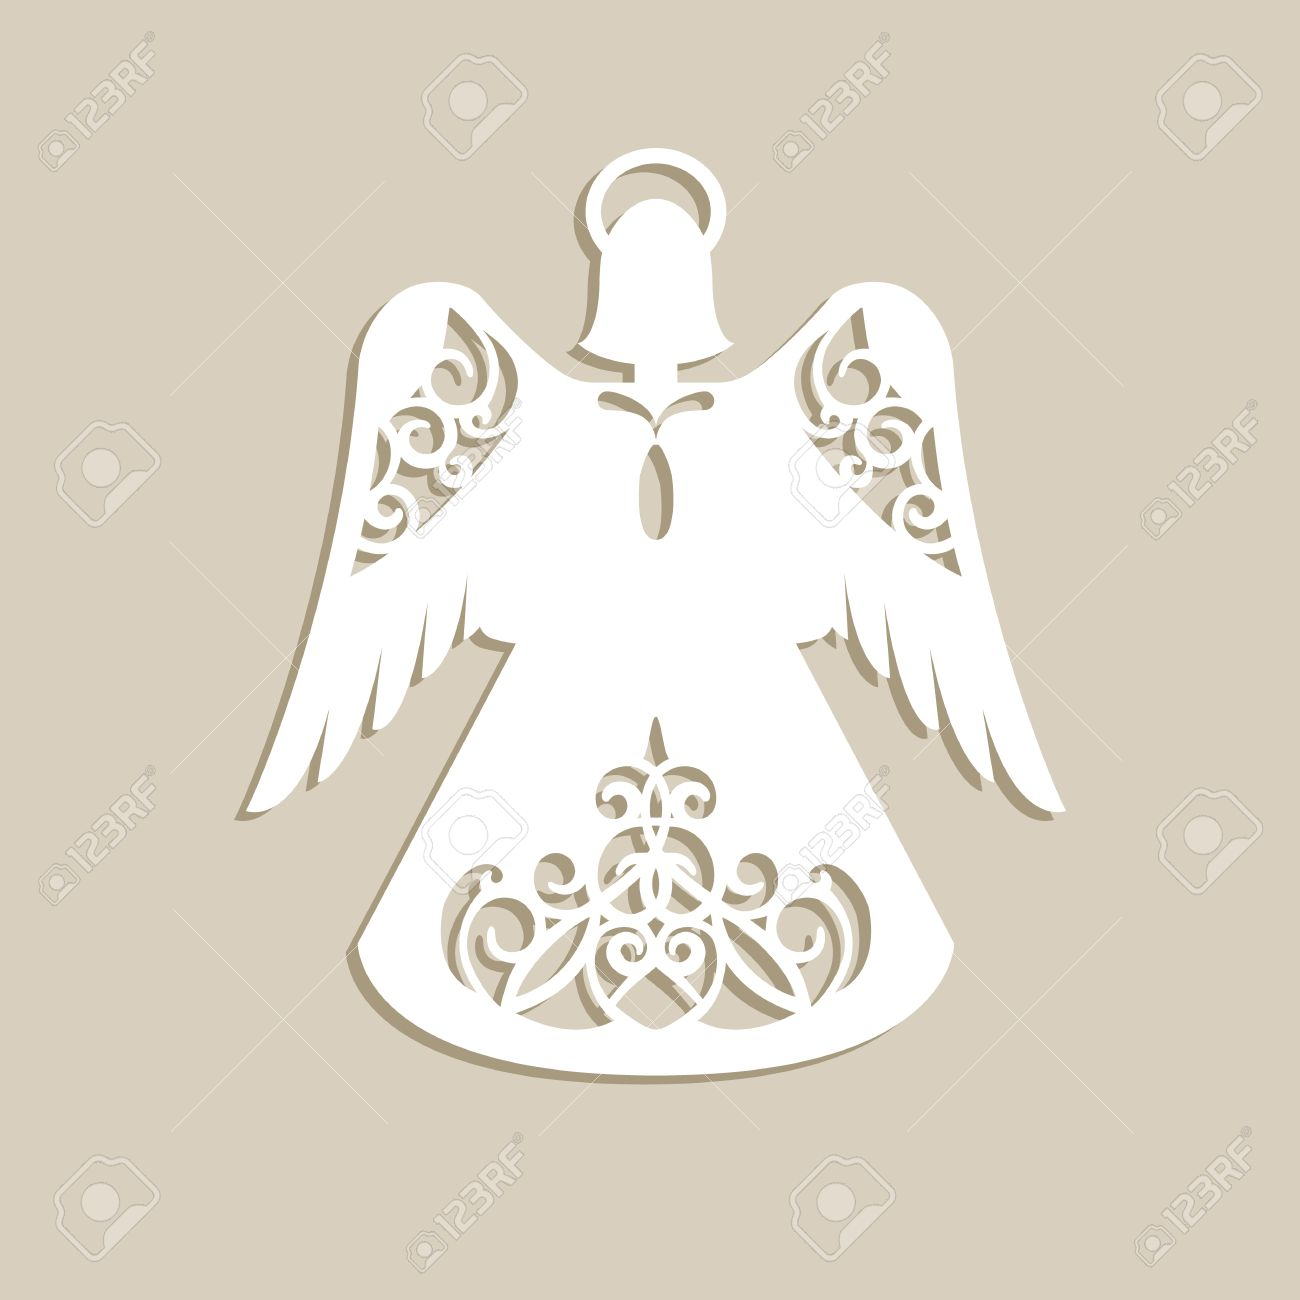 Cutout Angel Stock Photos And Images